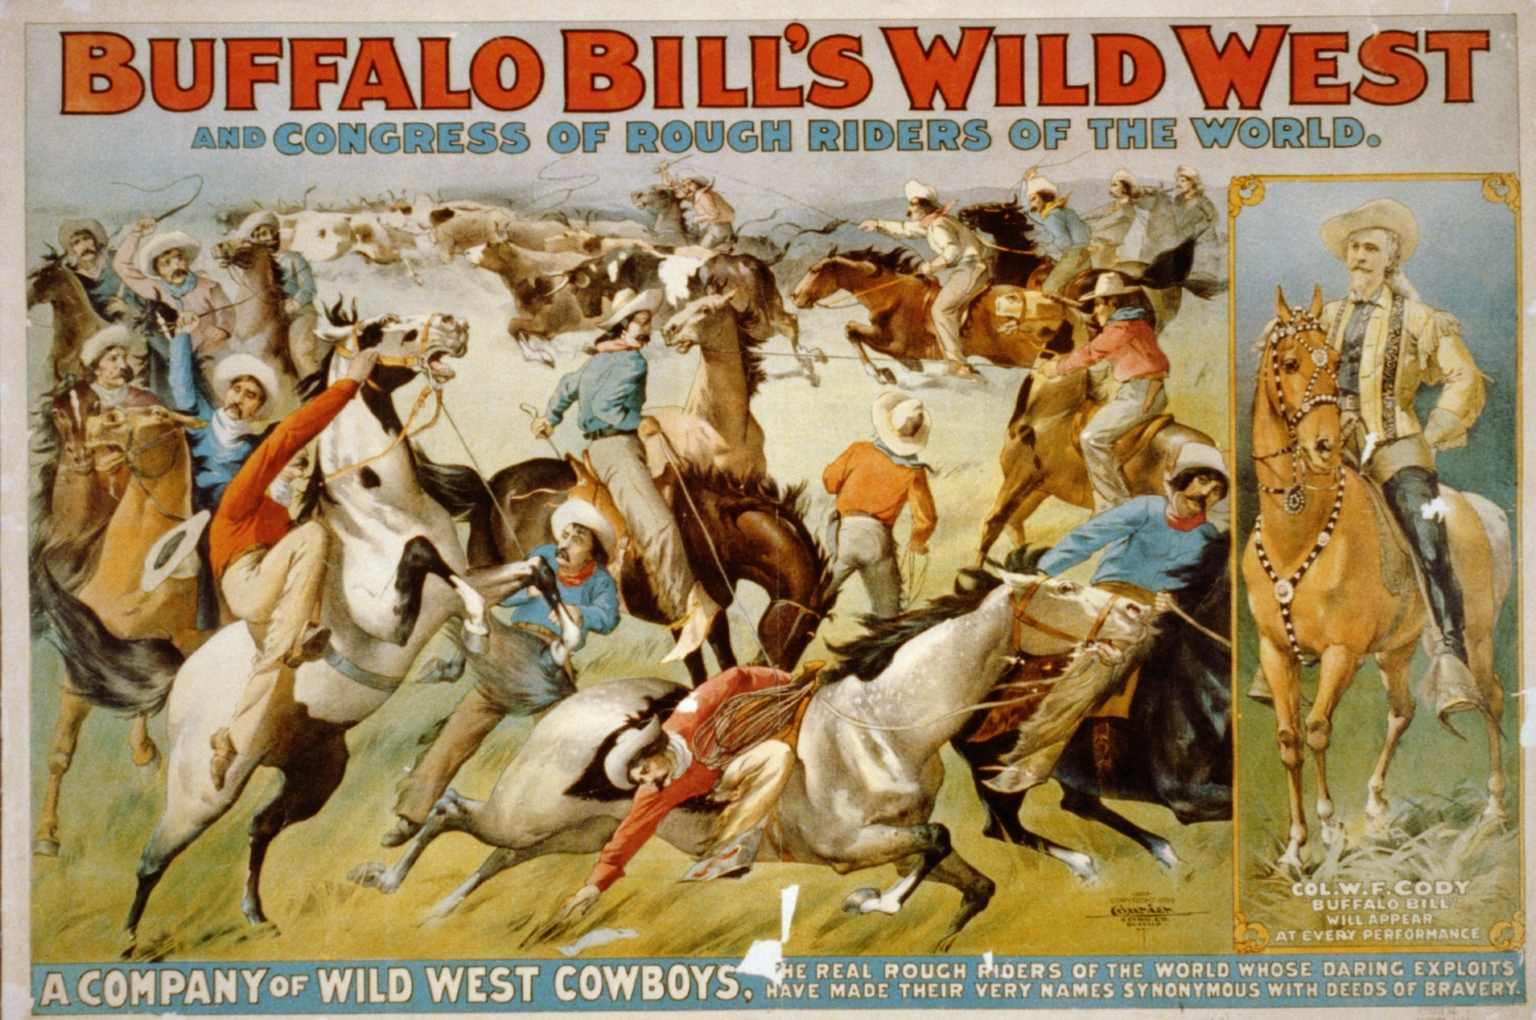 http://upload.wikimedia.org/wikipedia/commons/2/23/Buffalo_bill_wild_west_show_c1899.jpg